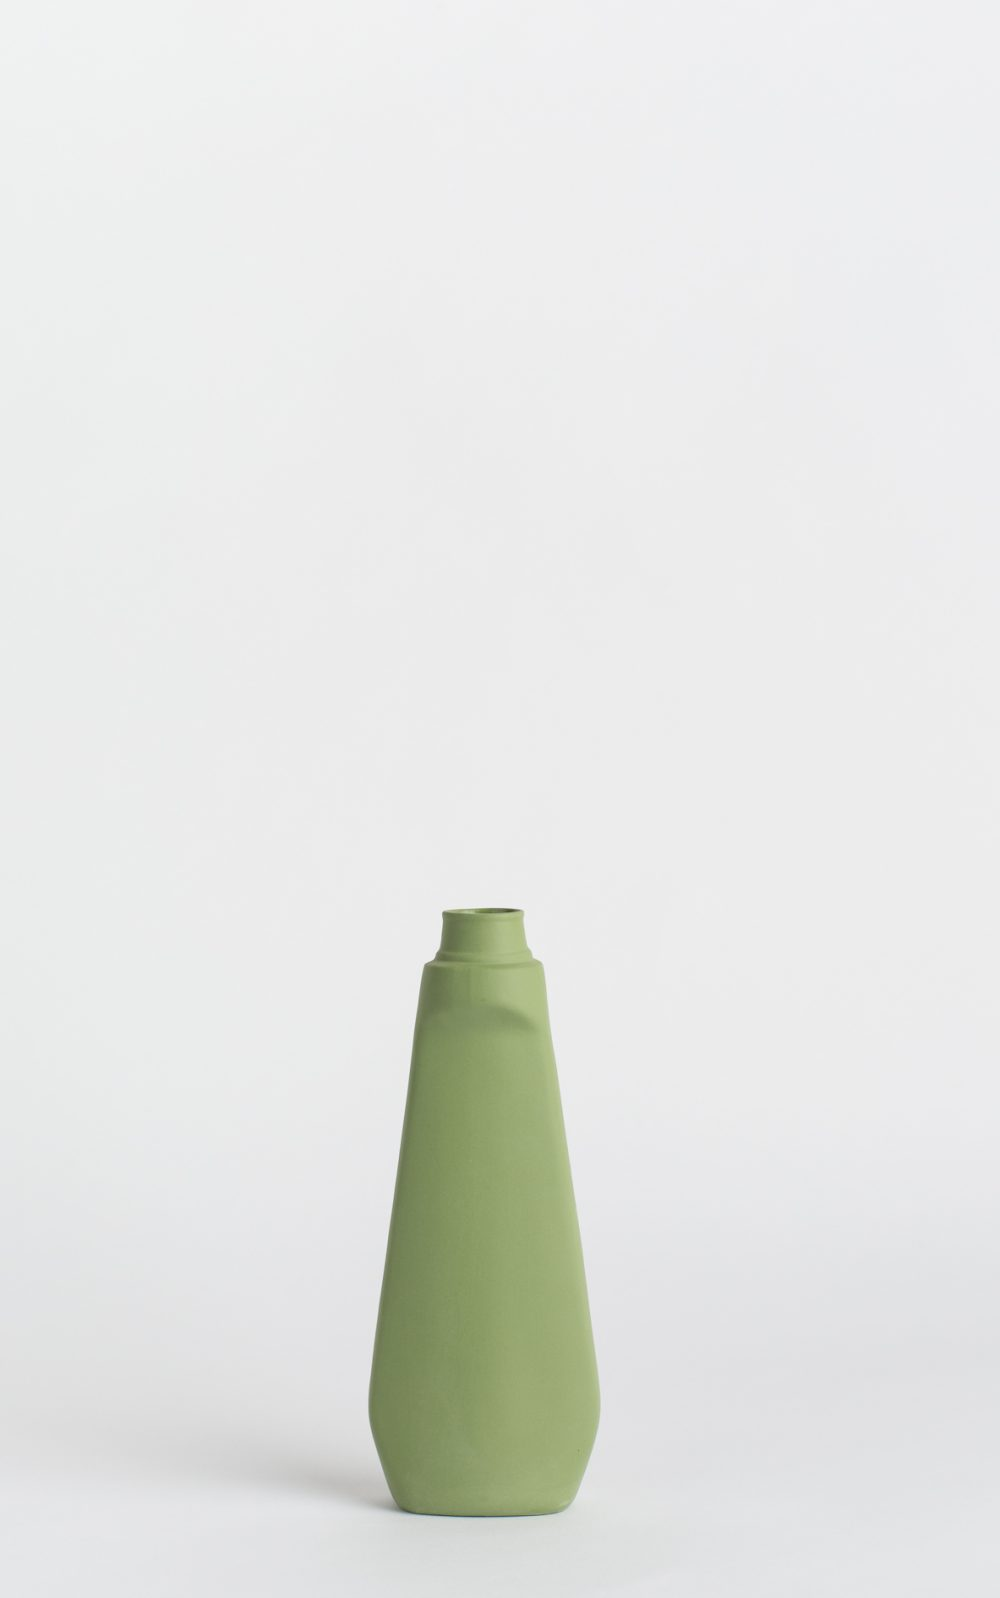 bottle vase #4 dark green